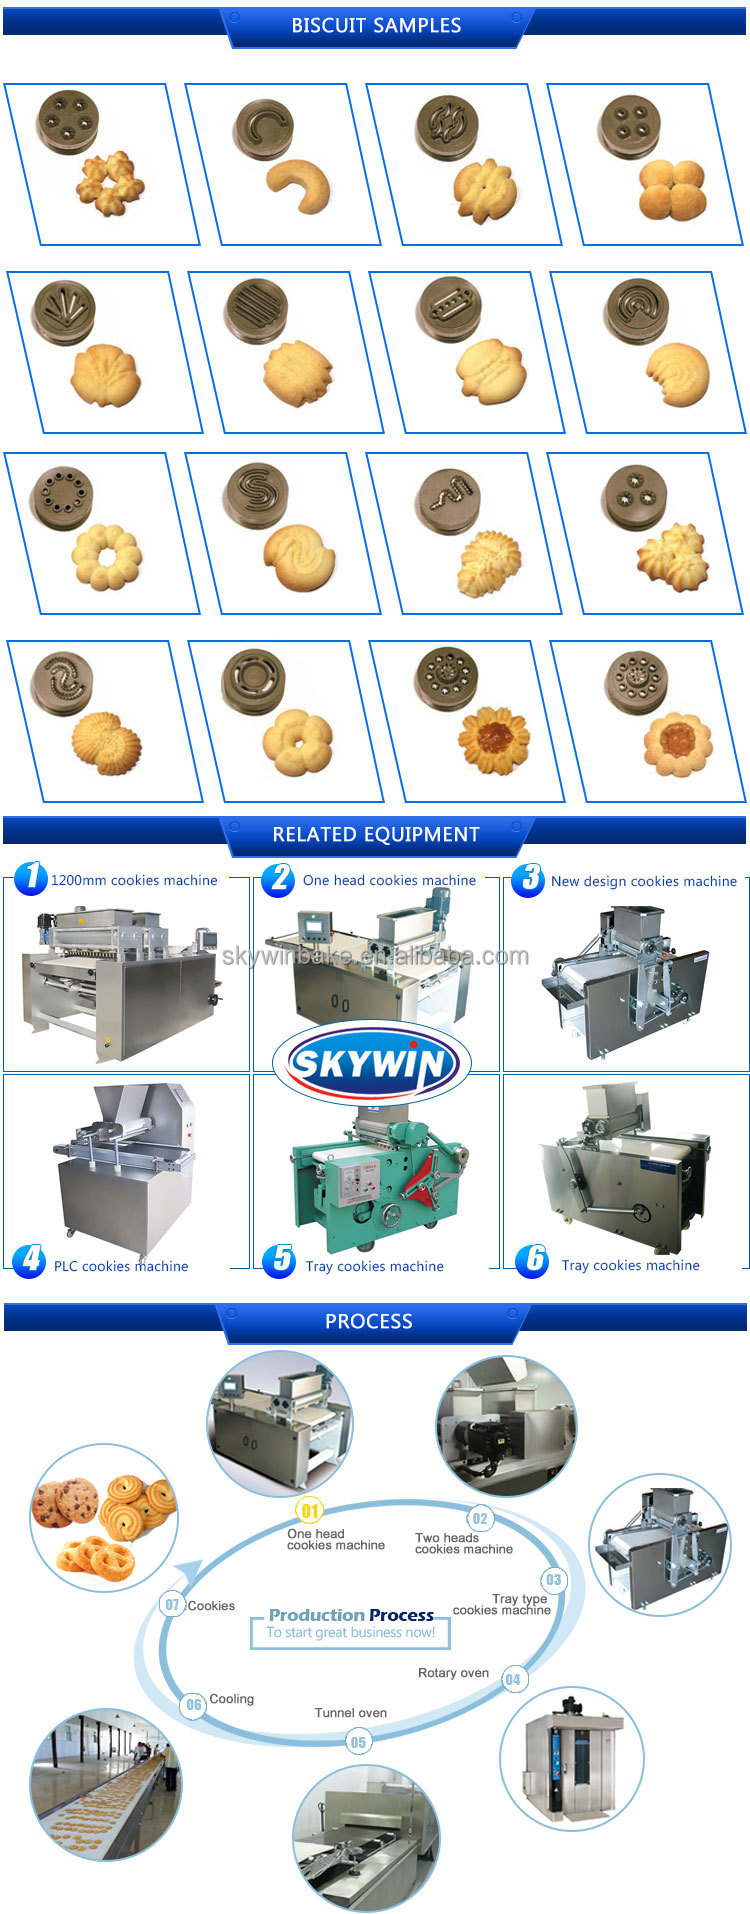 Skywin Factory Small Cookie Biscuit Making Machine For Cookie Baking